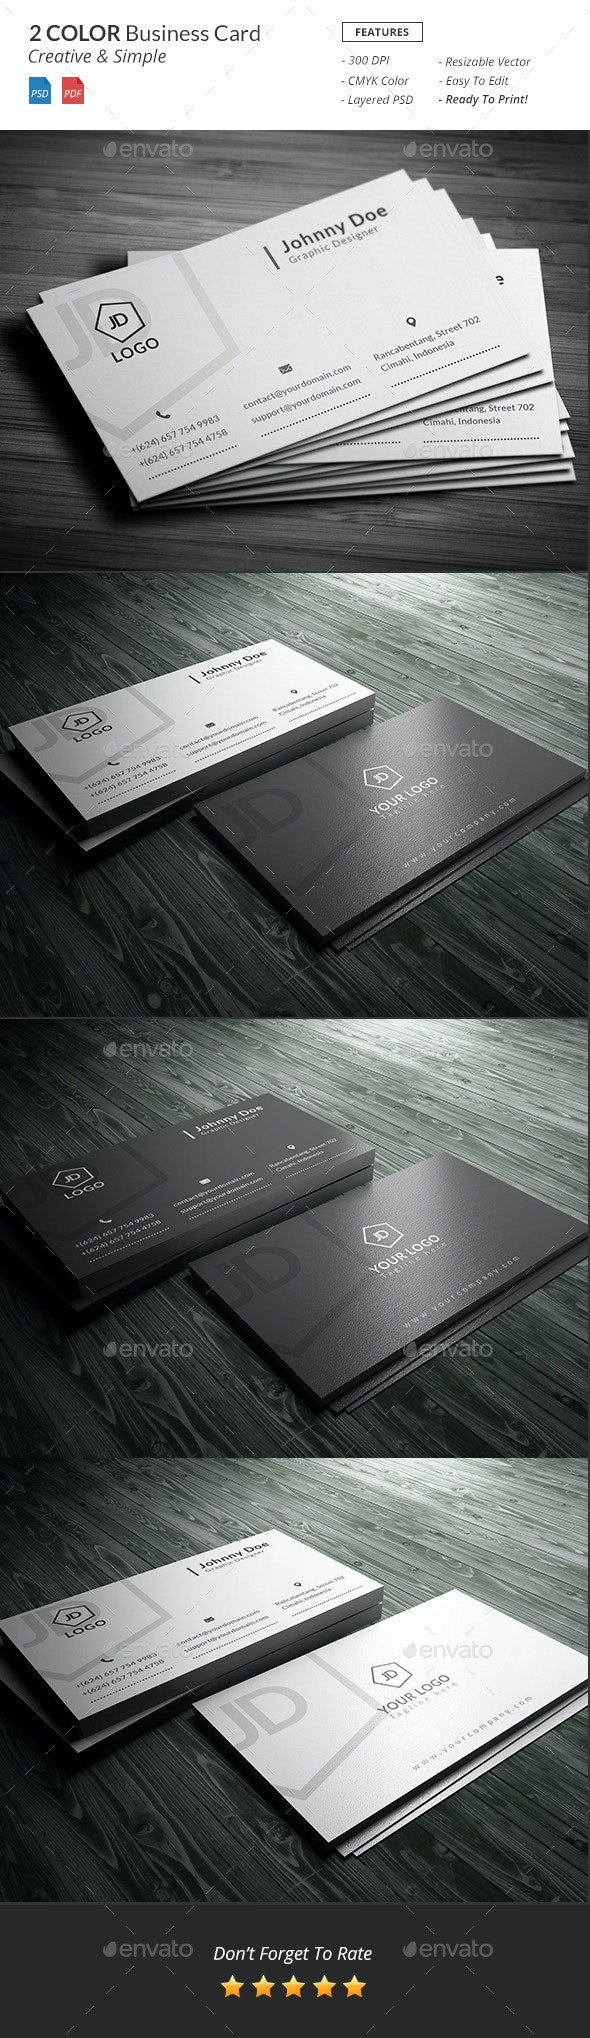 Black & White Business Card - Creative Business Cards